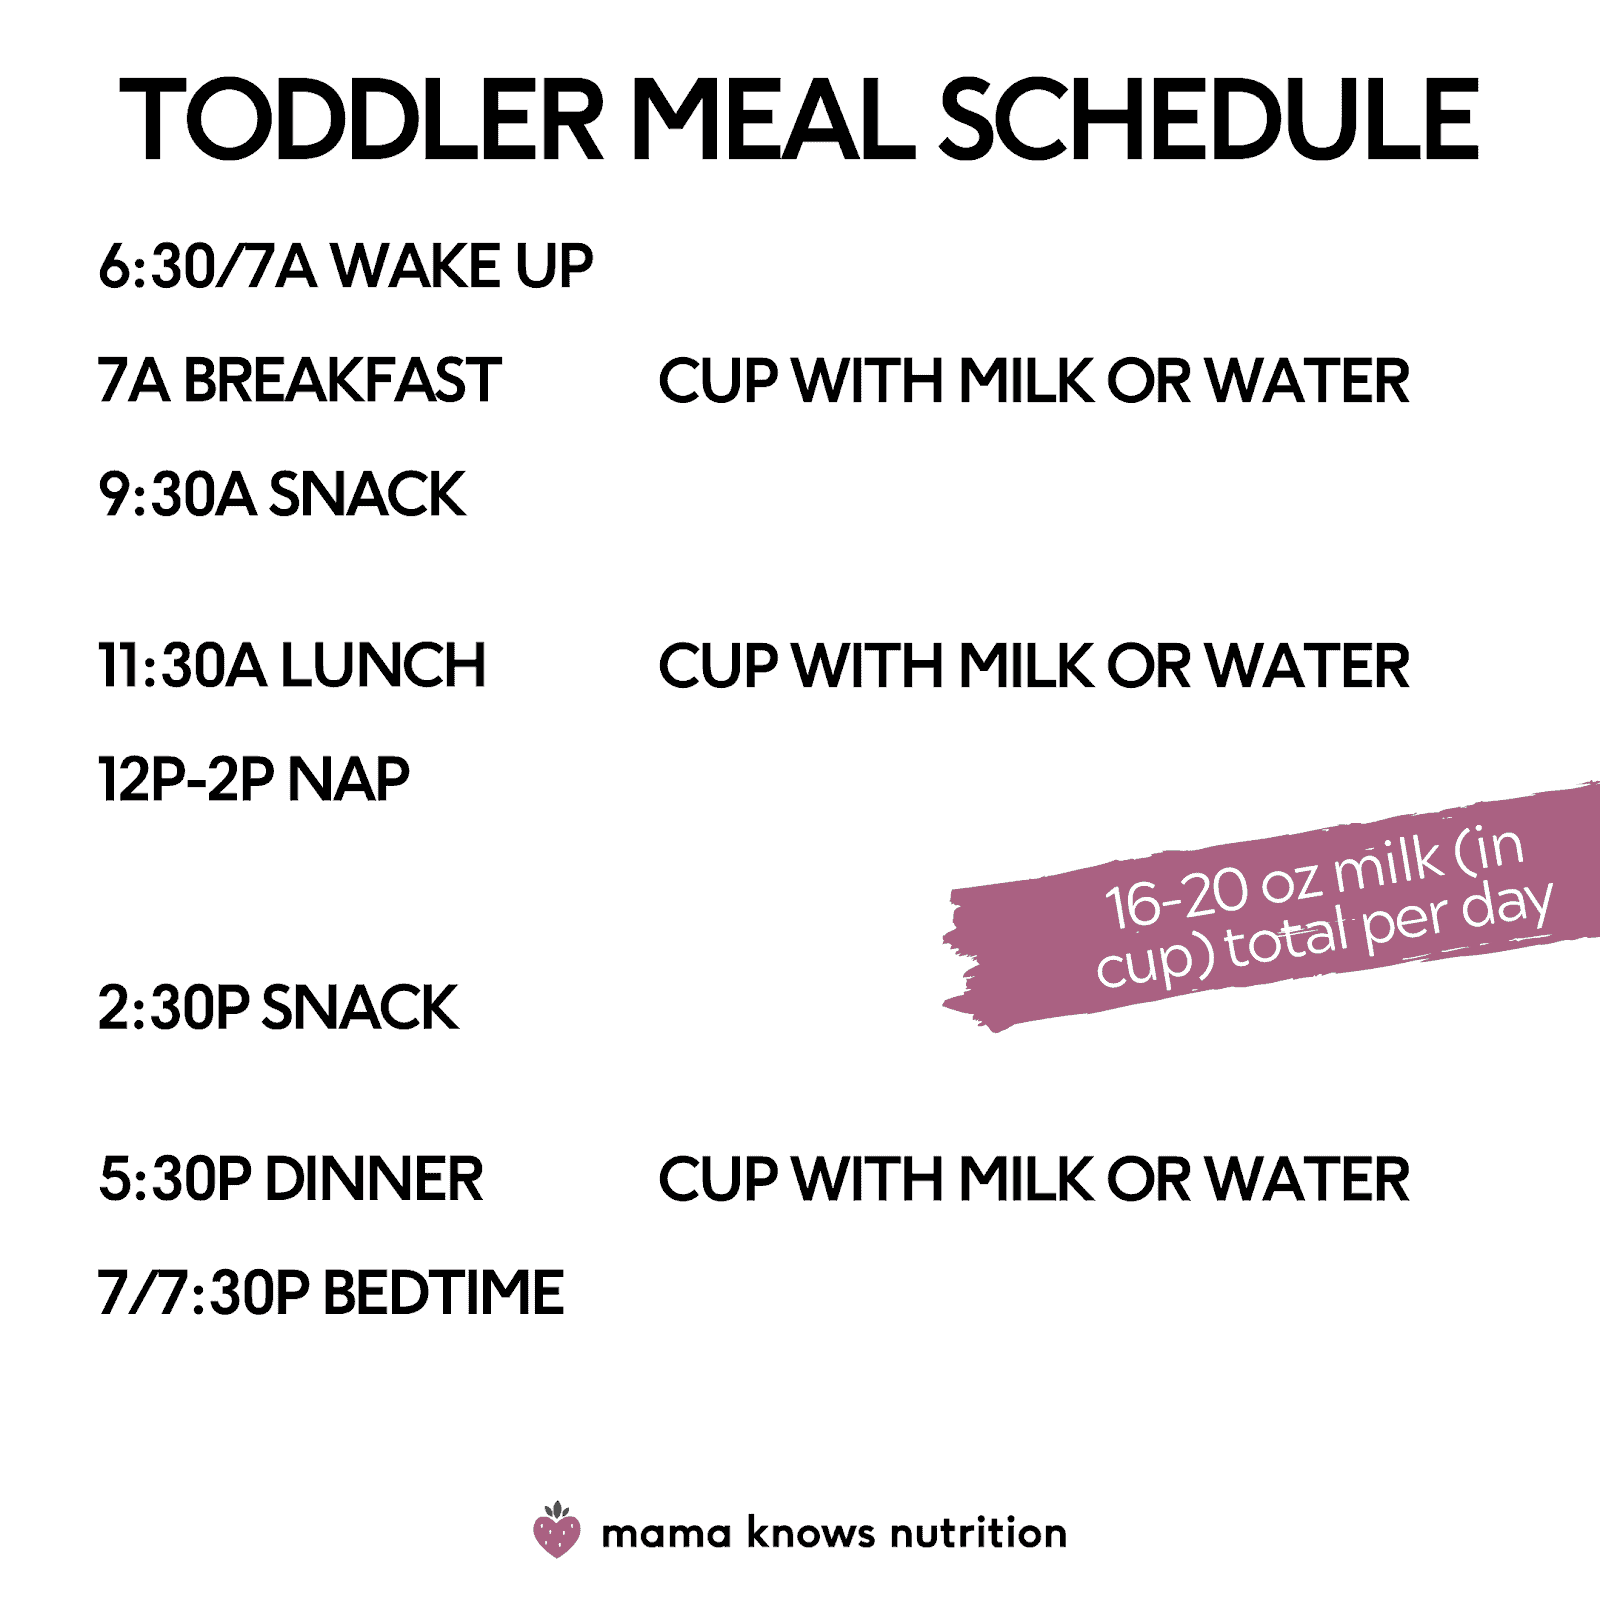 Toddler Meal Schedule